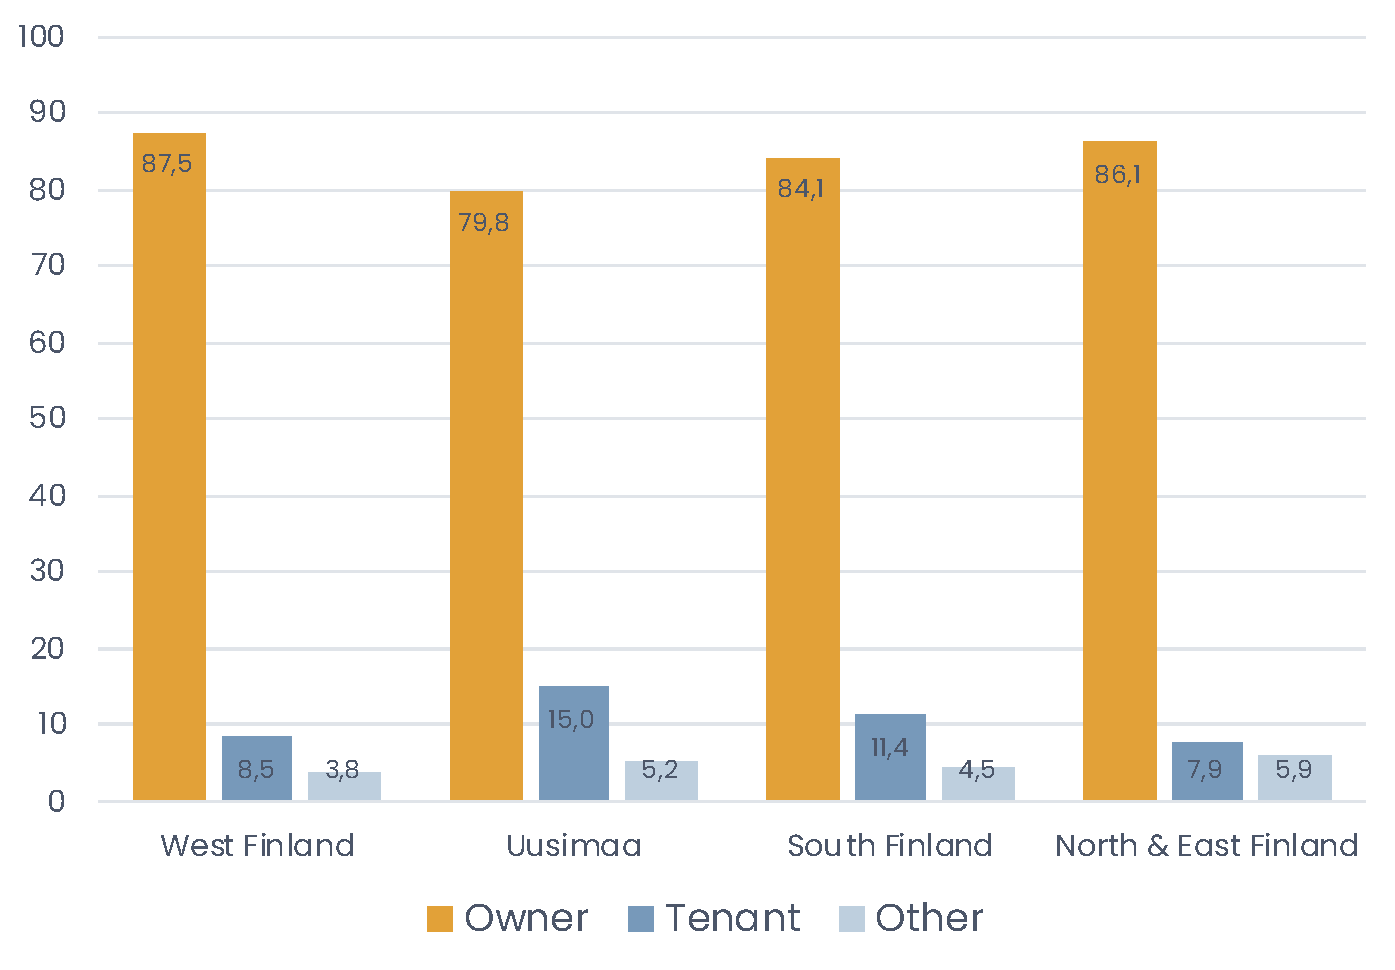 Nearly all respondents currently live in an owned residence.